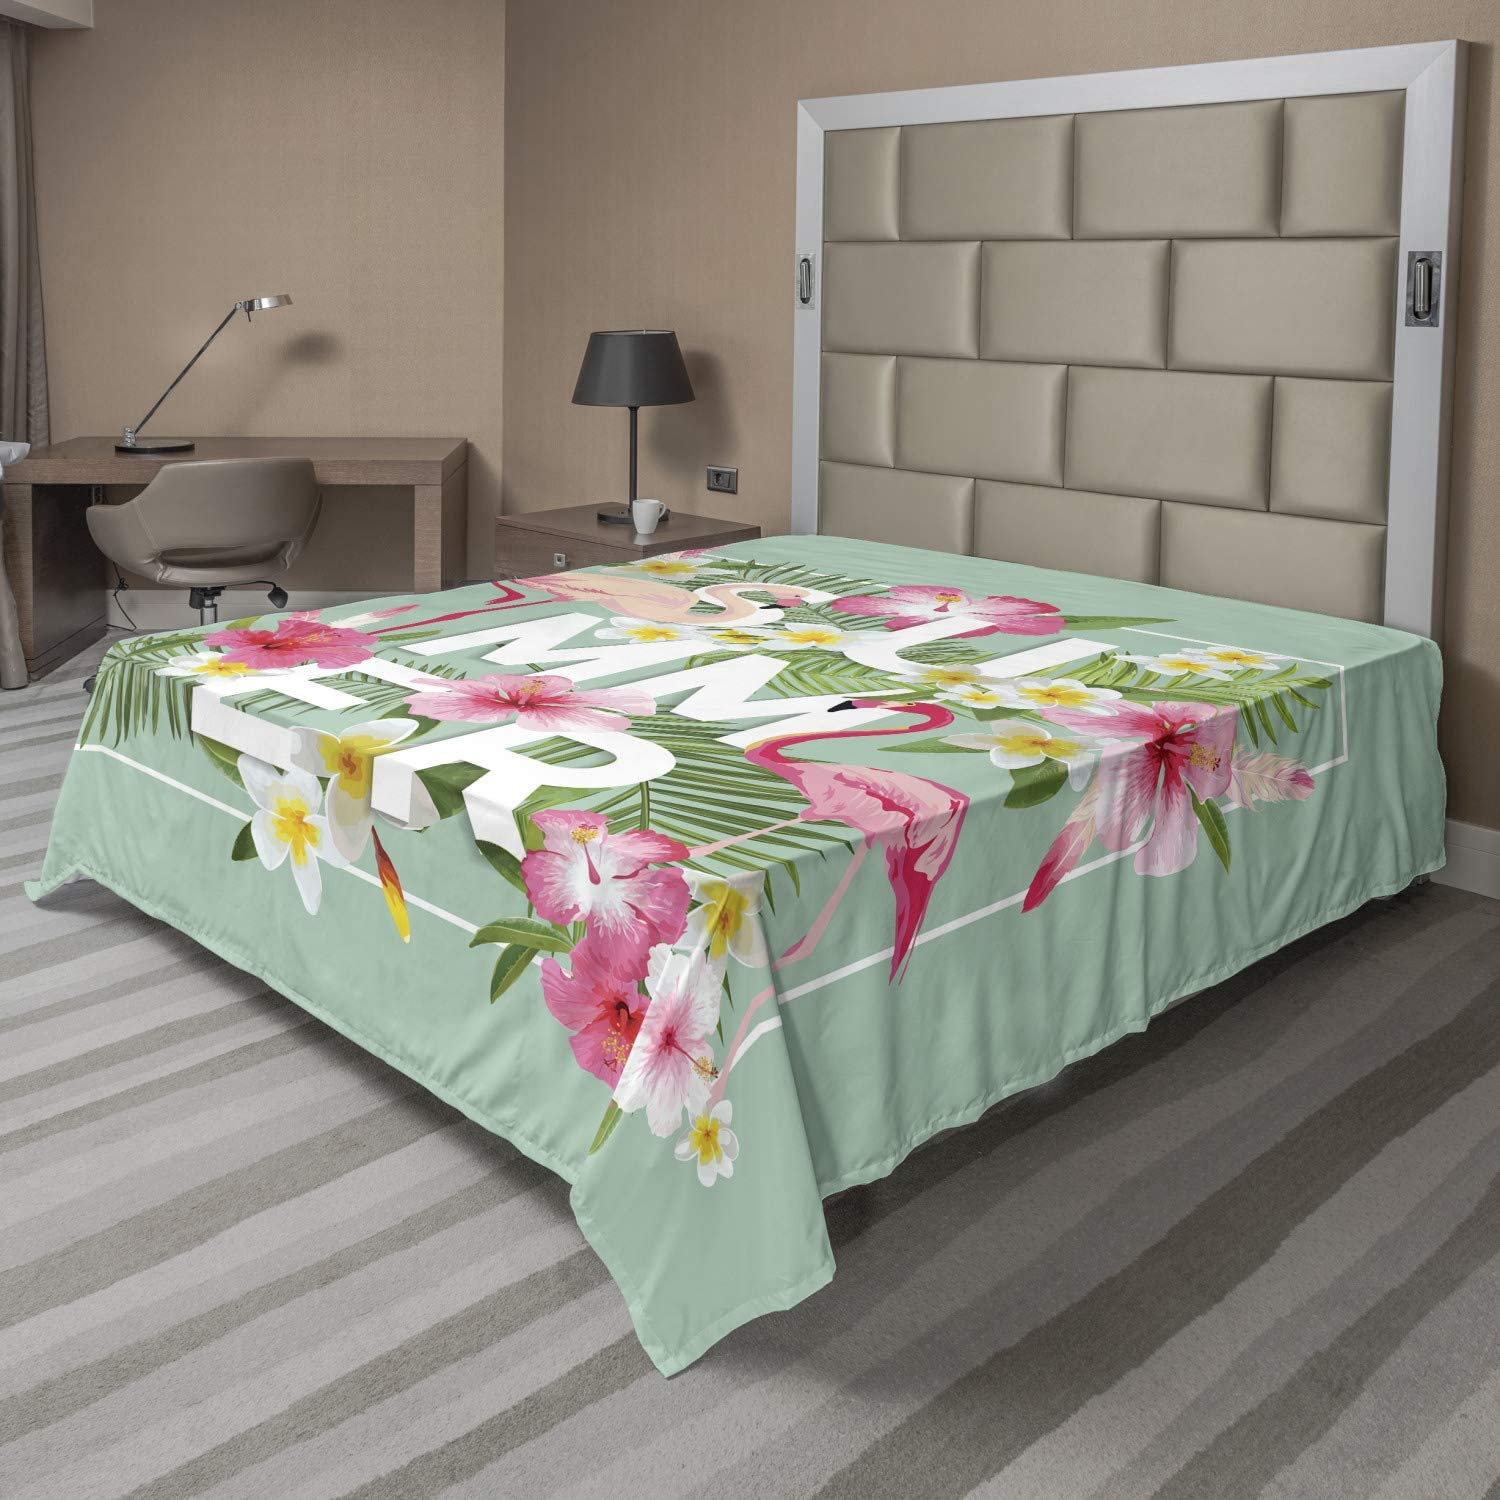 Ambesonne Floral Flat Popular popular Sheet Tropical Retr Flamingos with Shipping included Flower